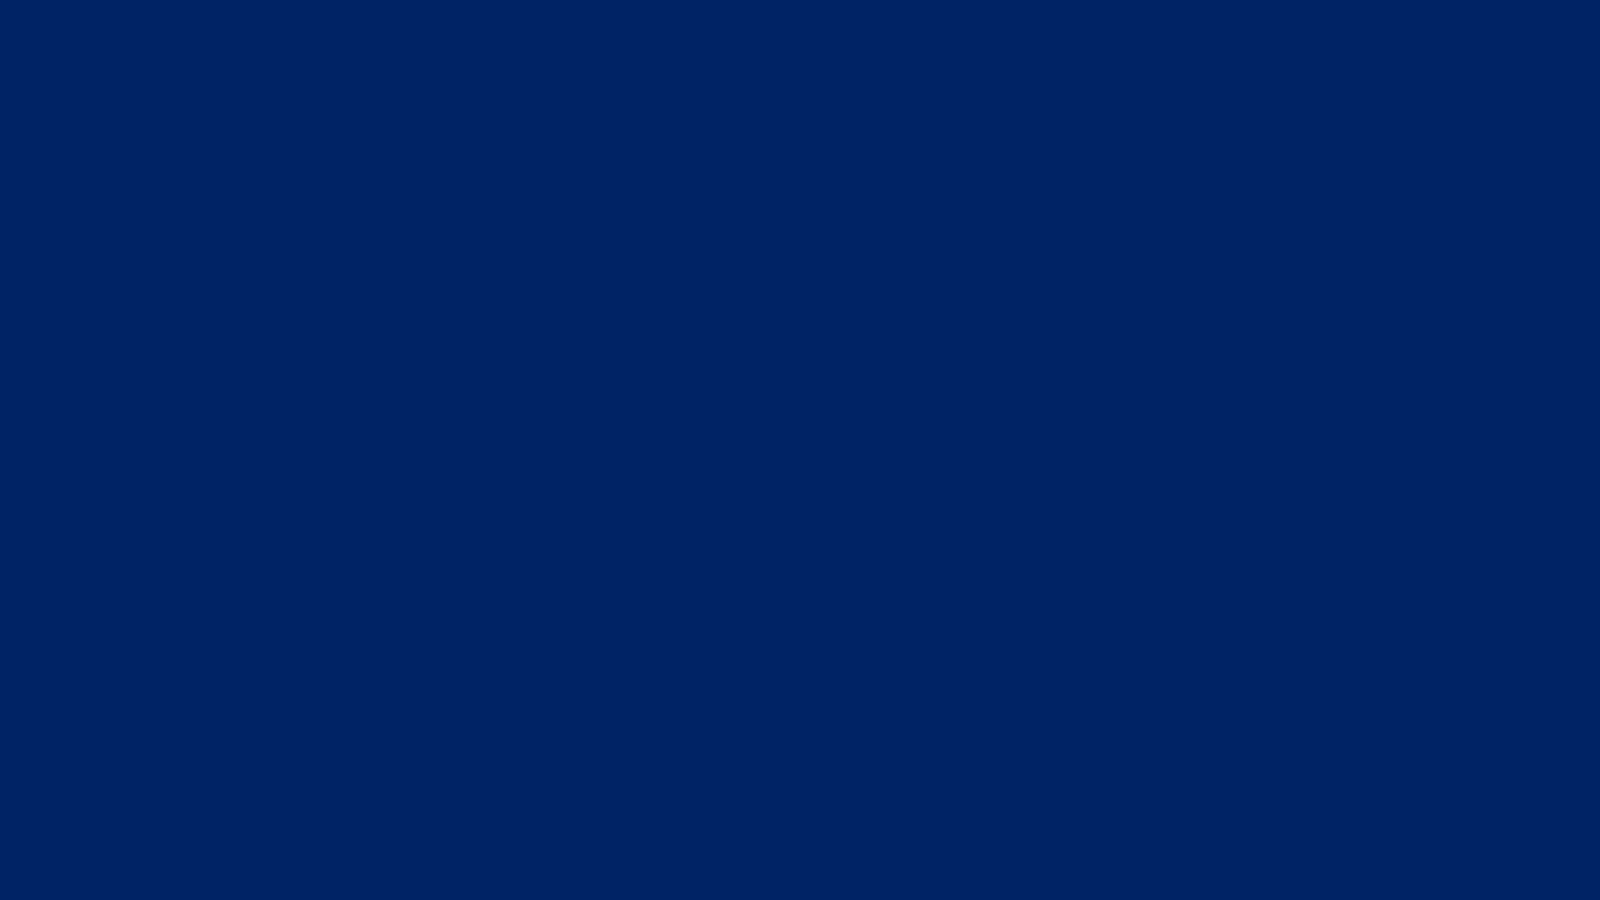 1600x900 Royal Blue Traditional Solid Color Background